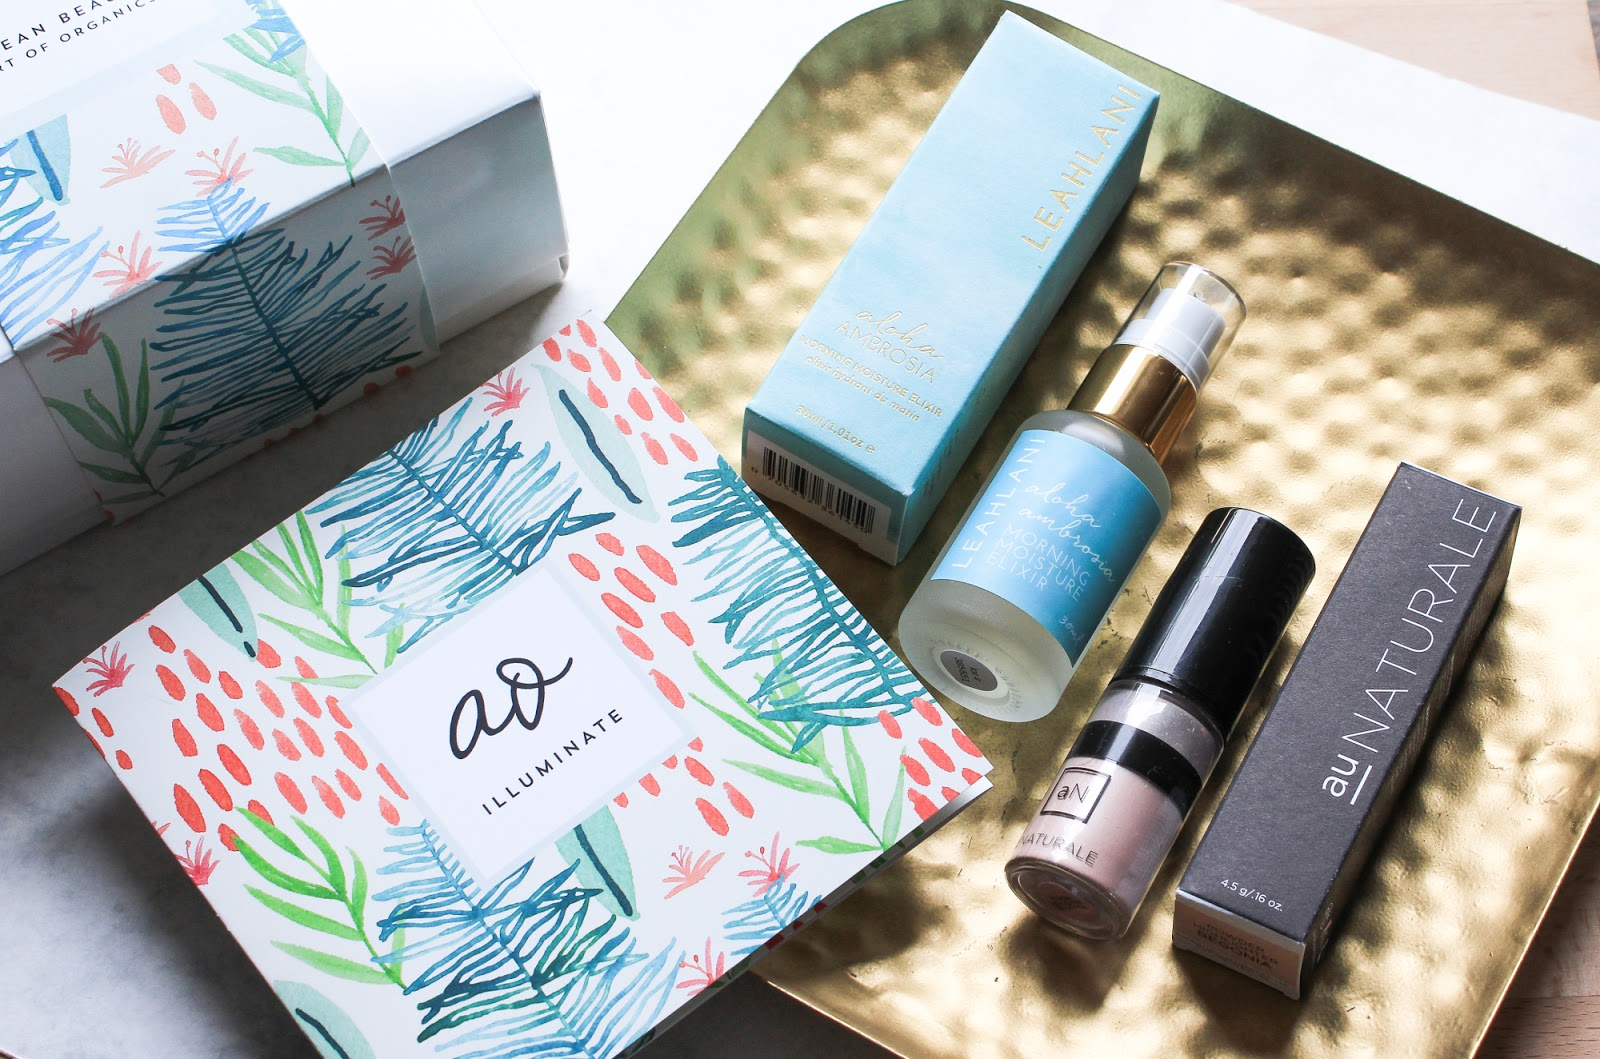 ILLUMINATE Art of Organics July 2018 Clean Beauty Box Leahlani Skincare Aloha Ambrosia Morning Moisture Elixir, Au Naturale Pure Powder Highlighter Begonia